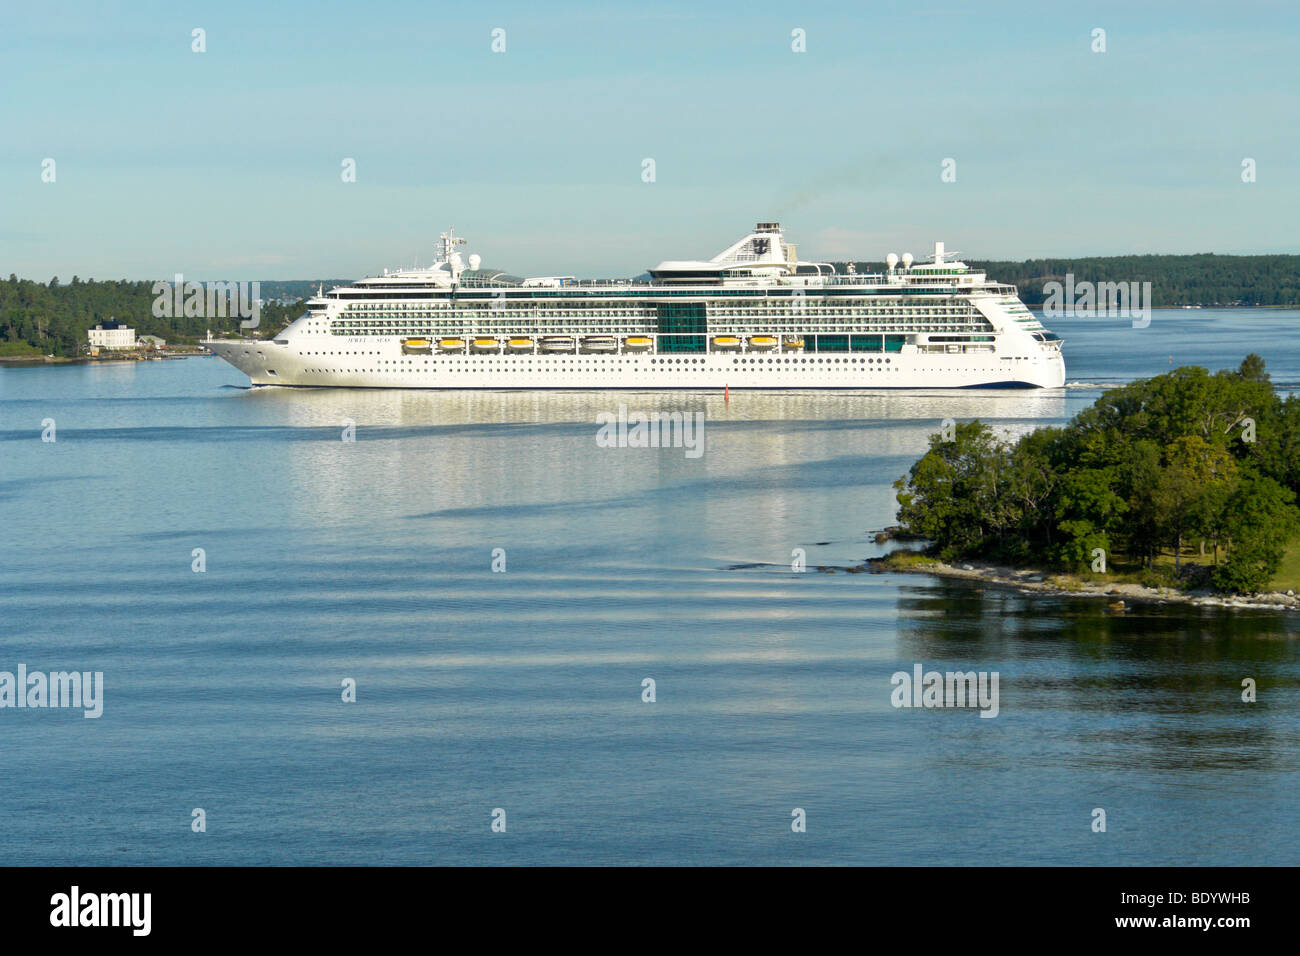 The Royal Caribbean International cruise ship Jewel of the Seas sails through the archipelago as she approaches - Stock Image